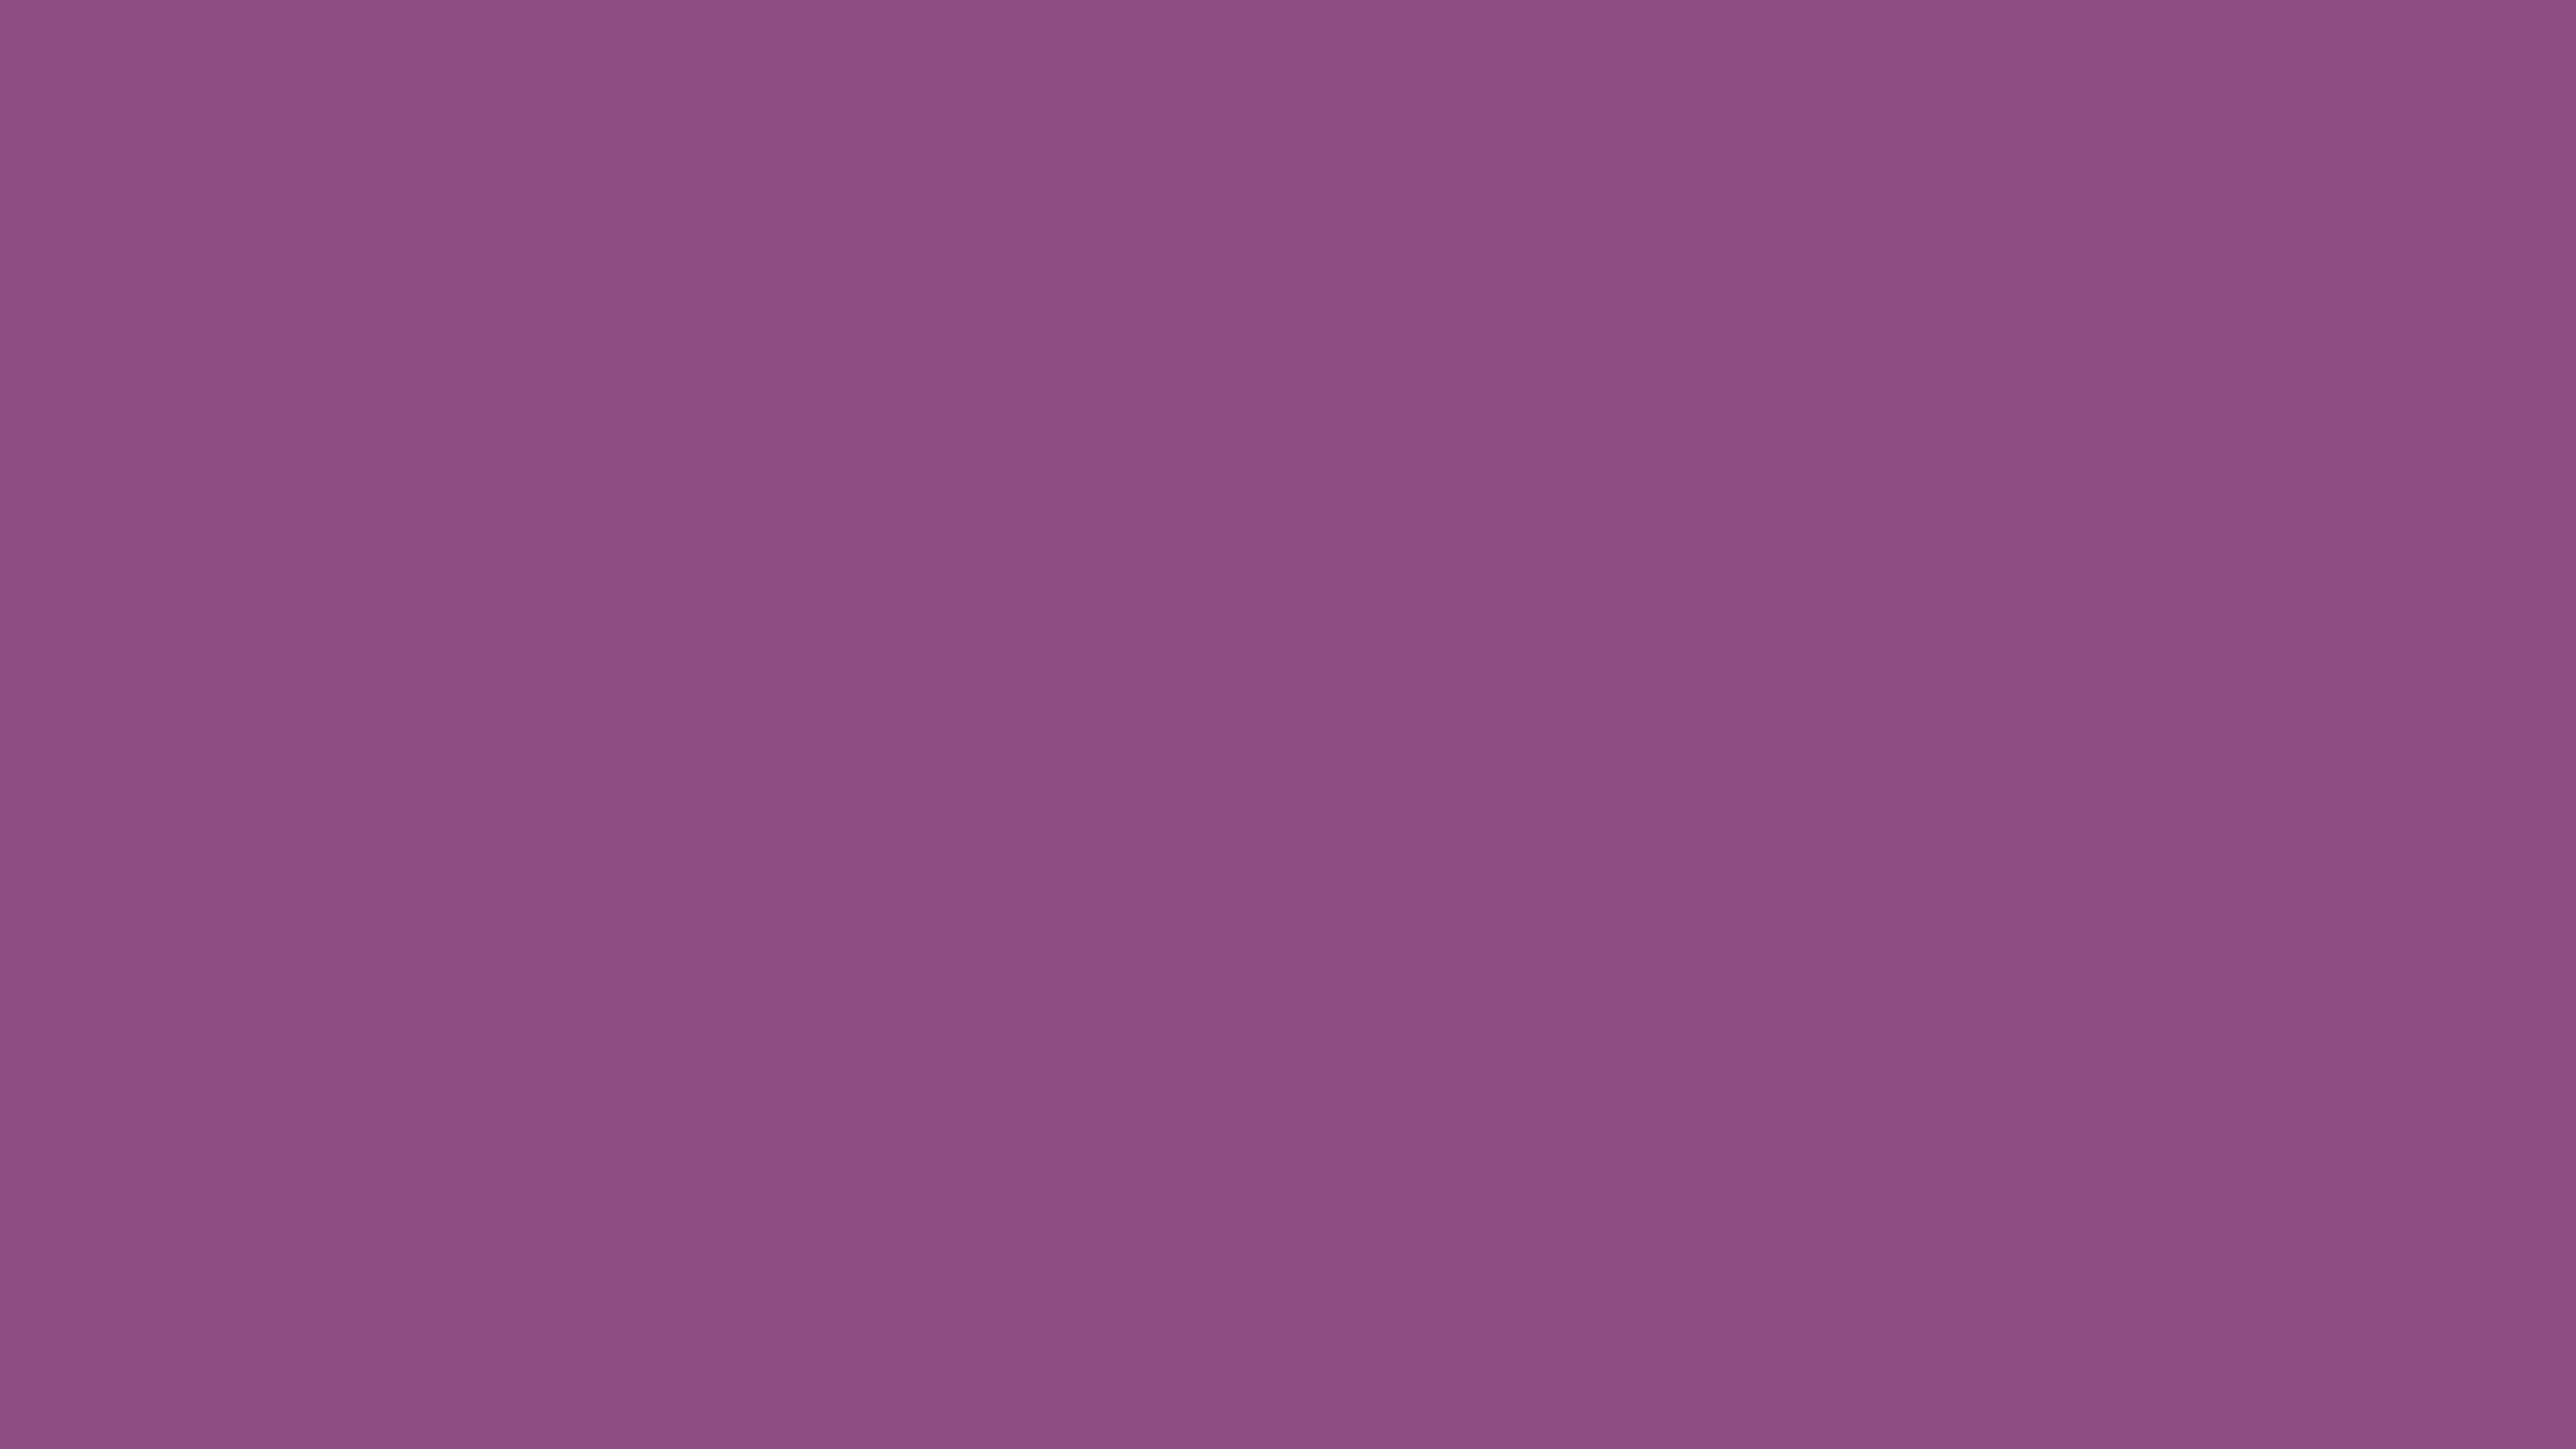 5120x2880 Razzmic Berry Solid Color Background